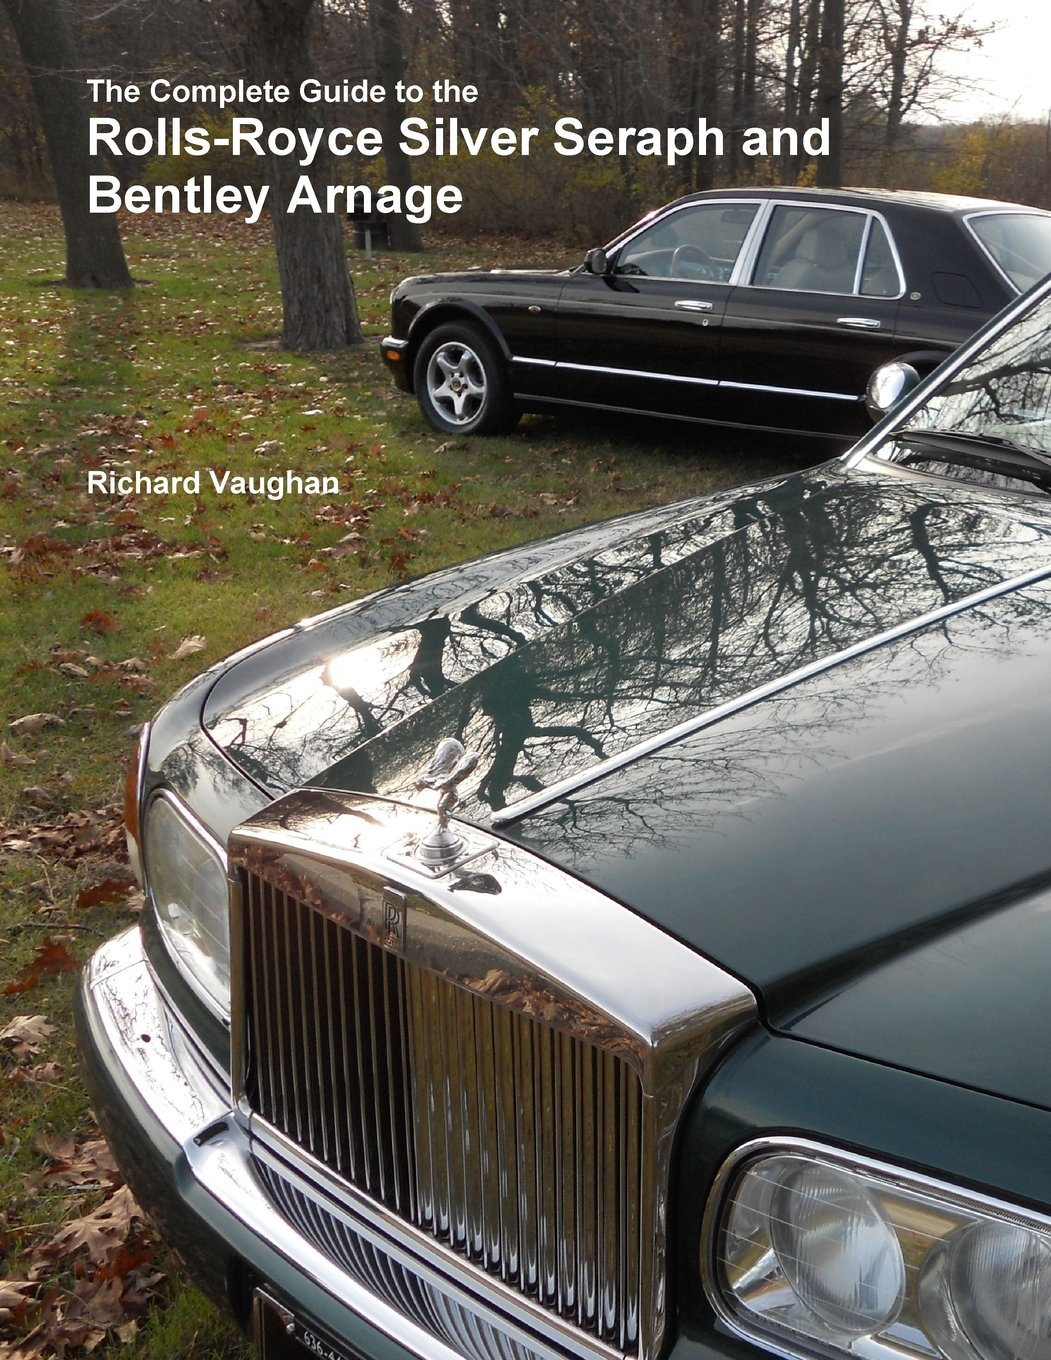 The complete guide to the rolls royce silver seraph and bentley the complete guide to the rolls royce silver seraph and bentley arnage richard vaughan 9781329861374 amazon books fandeluxe Choice Image